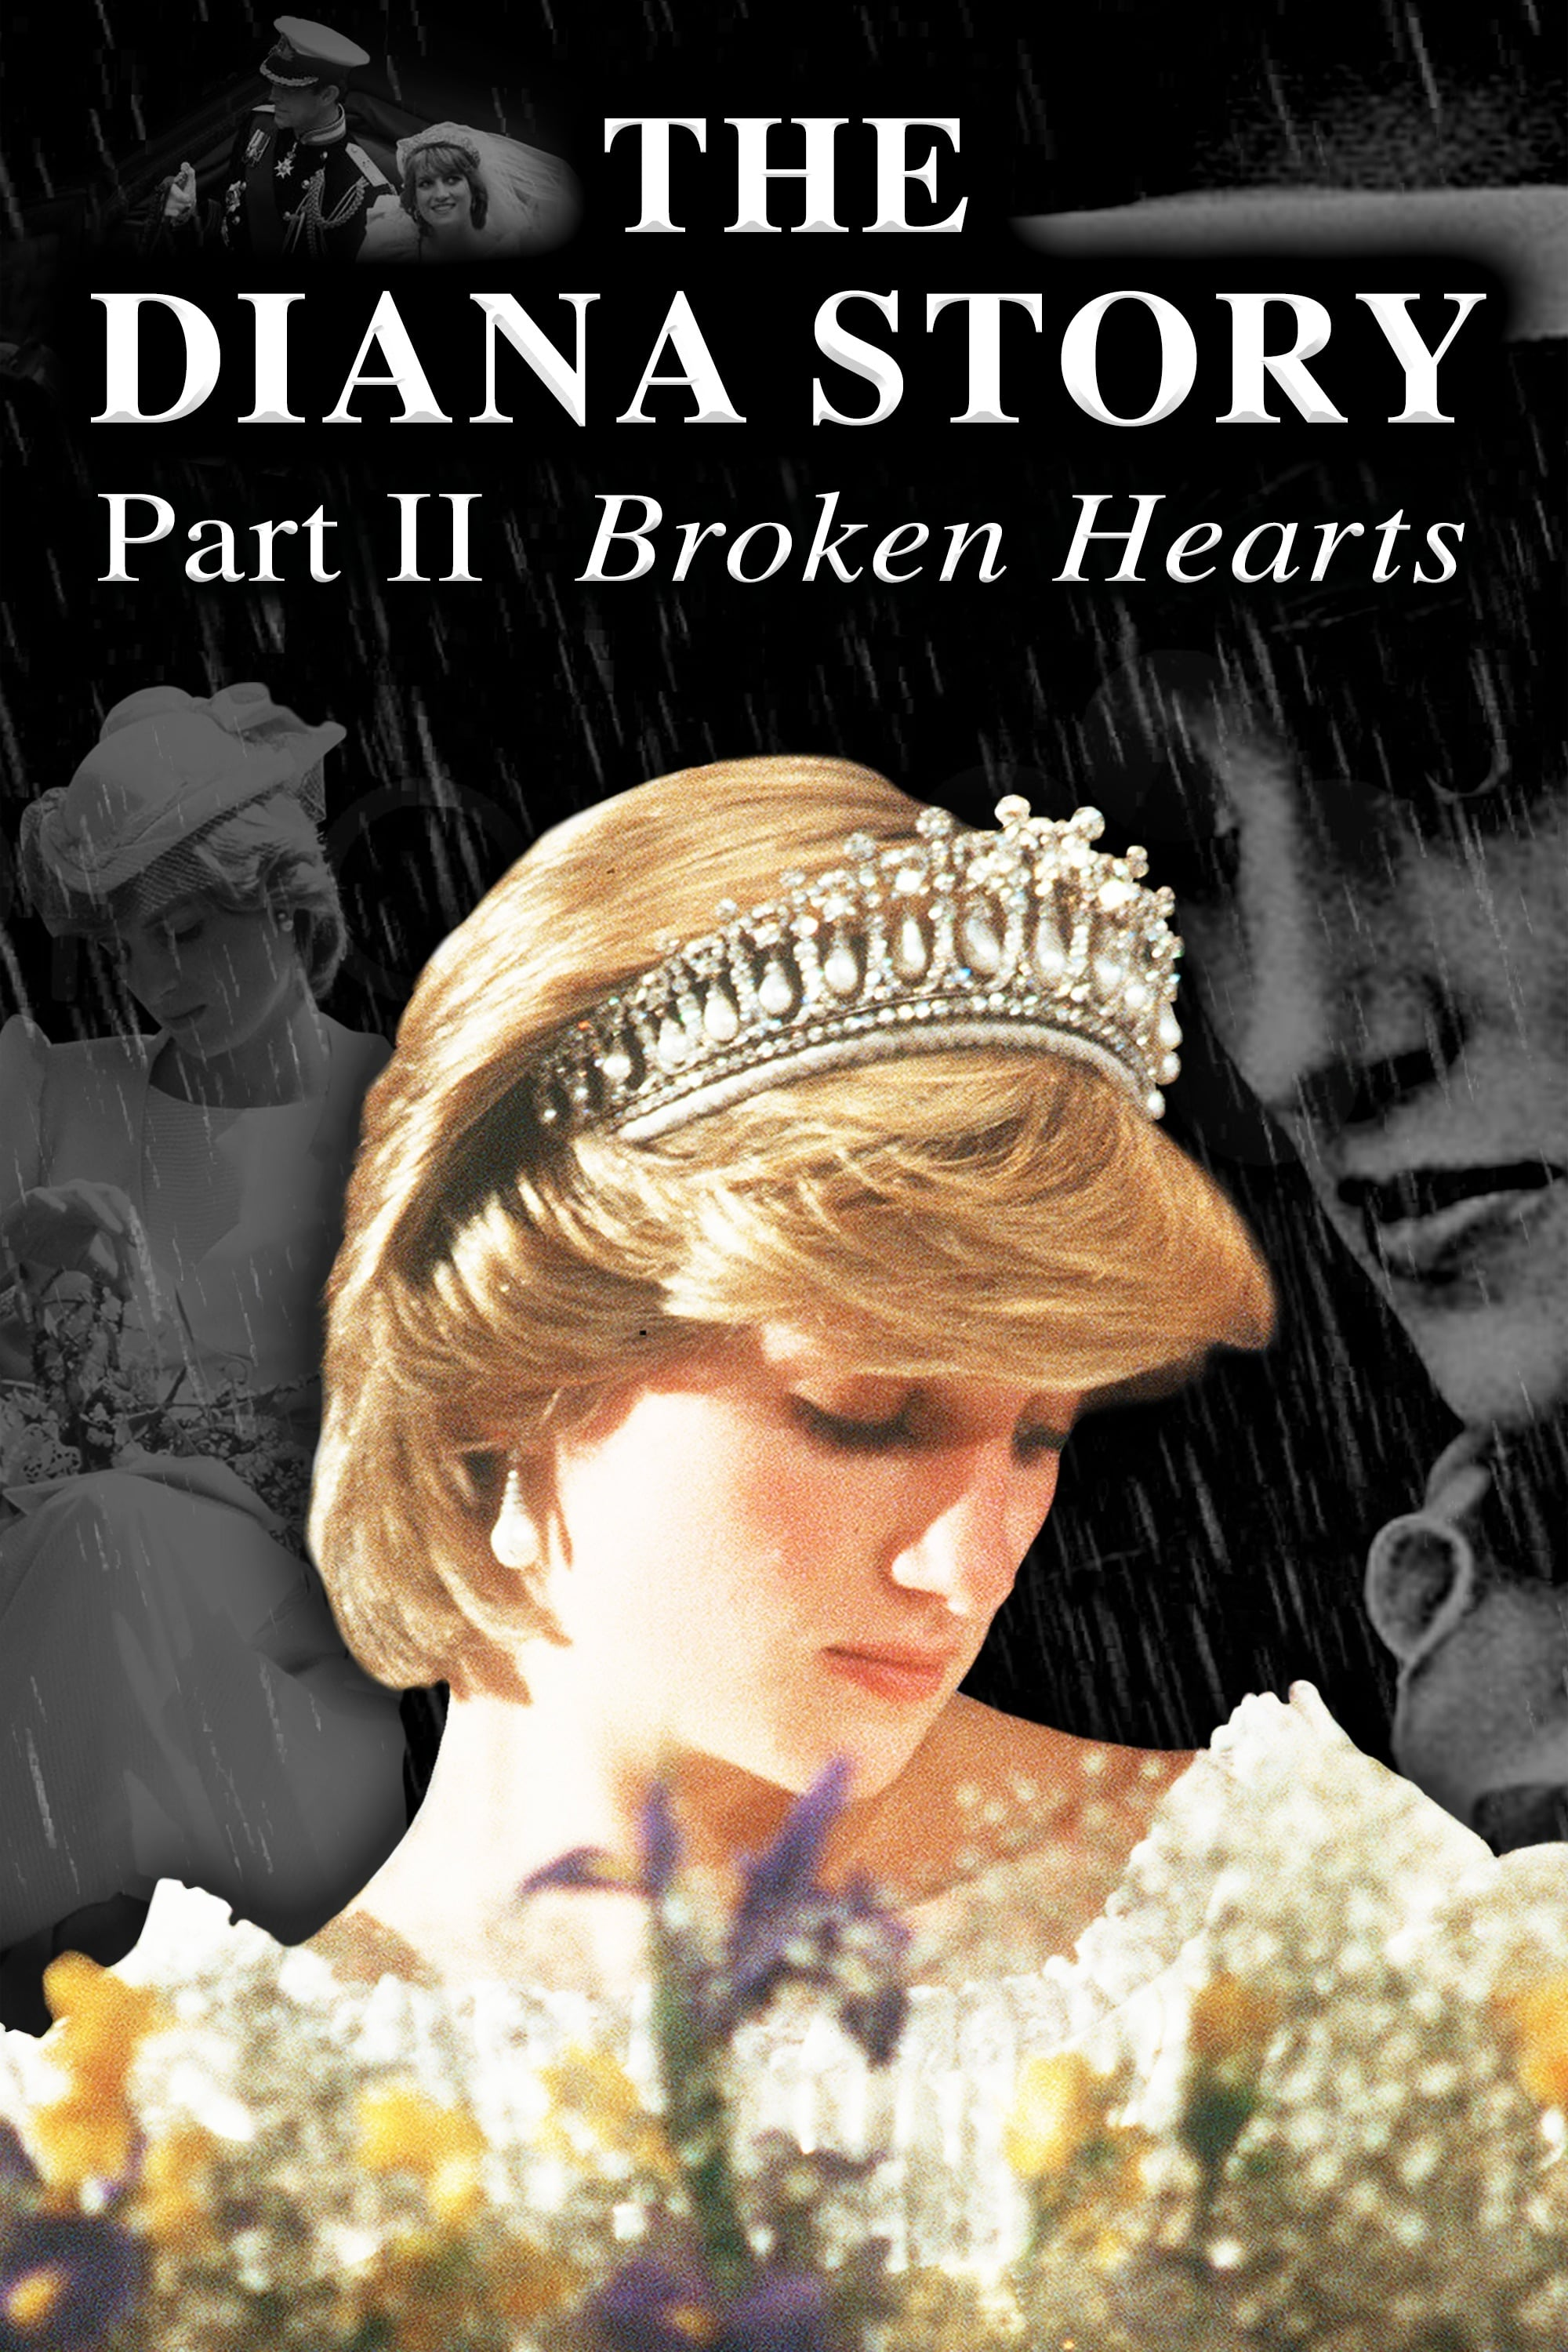 The Diana Story: Part II: Broken Hearts on FREECABLE TV